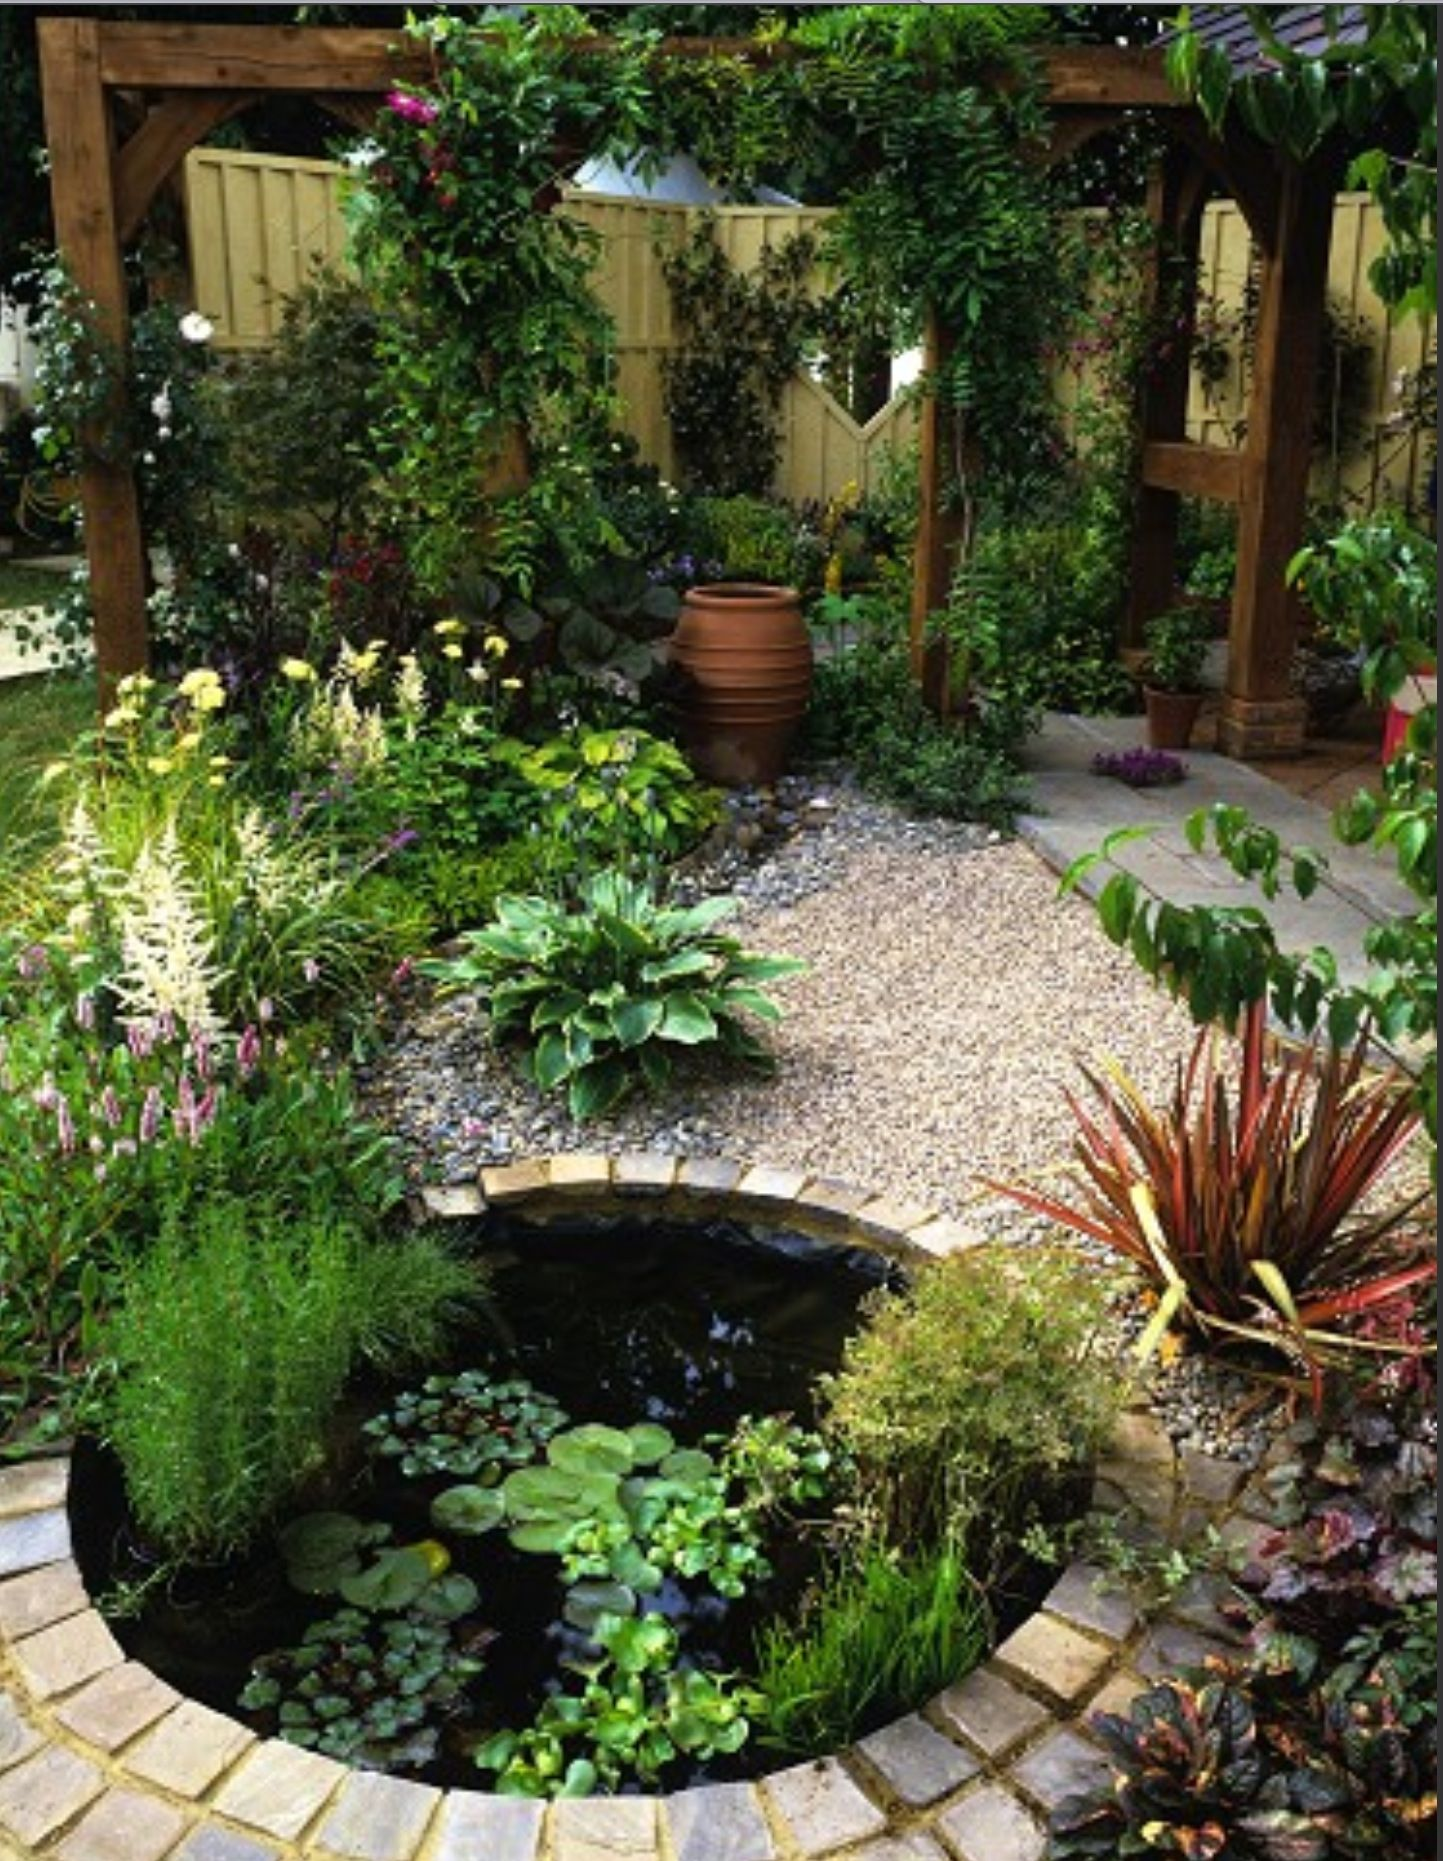 Pin by fiona wilshin on my garden wishlist pinterest for Japanese style pond